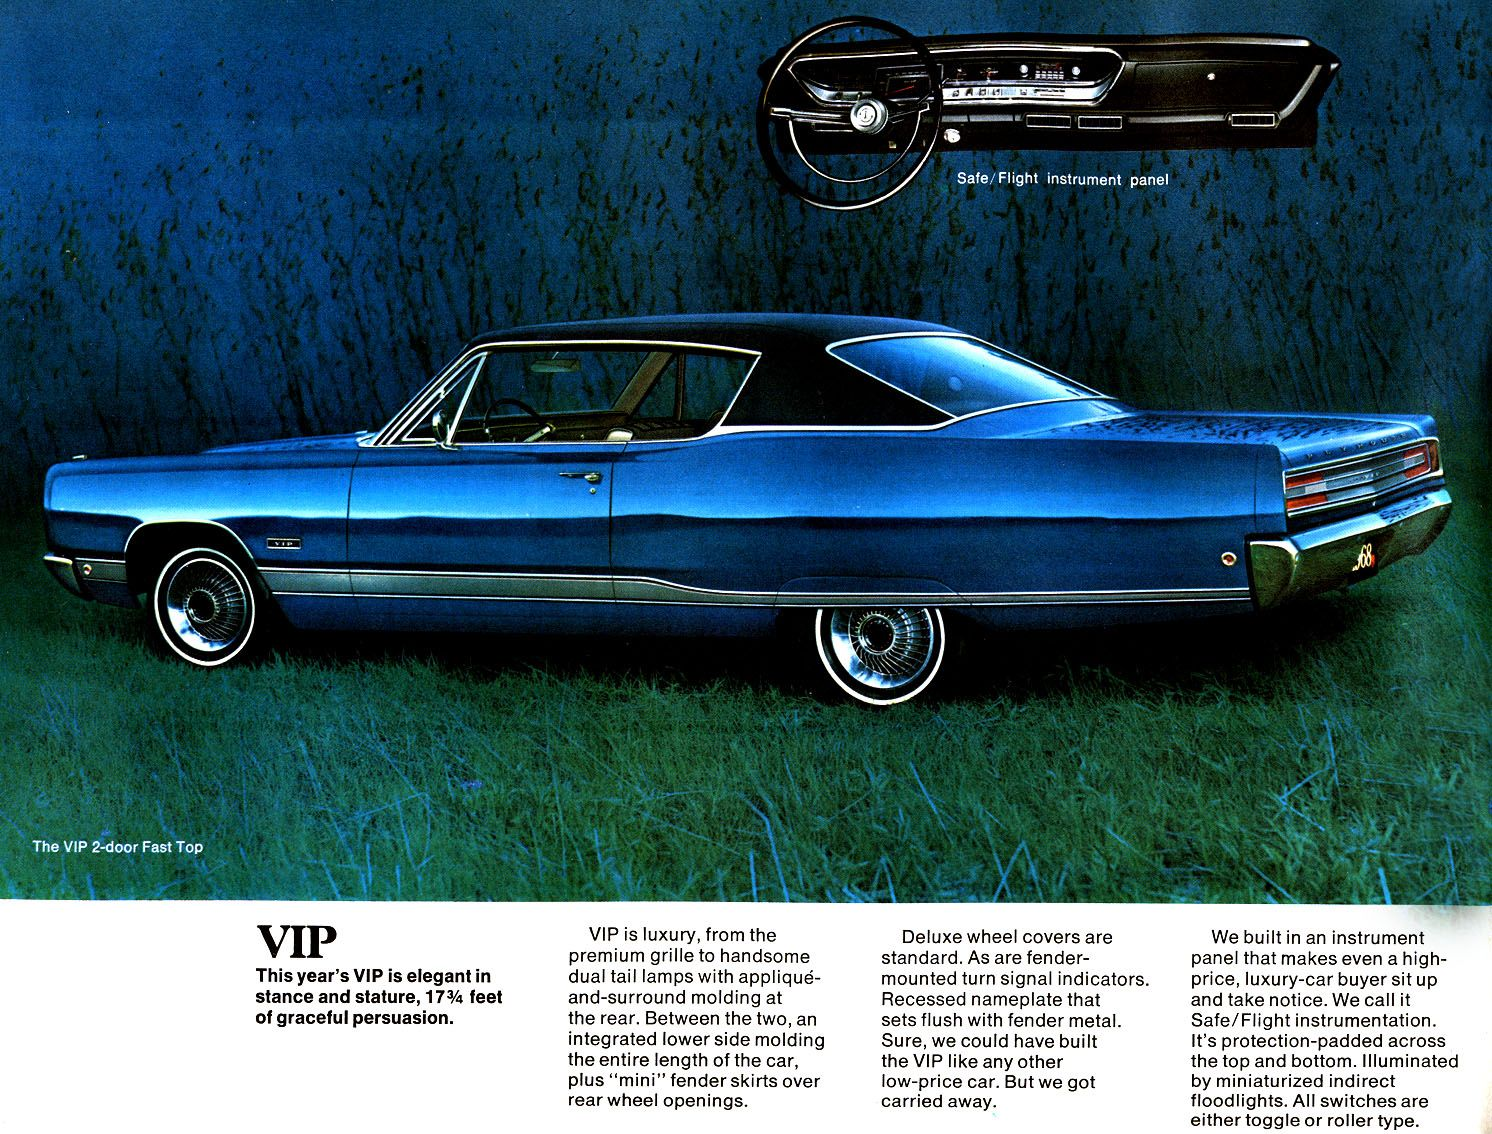 1968 Plymouth VIP | Plymouth ..car brochures | Pinterest | Plymouth ...